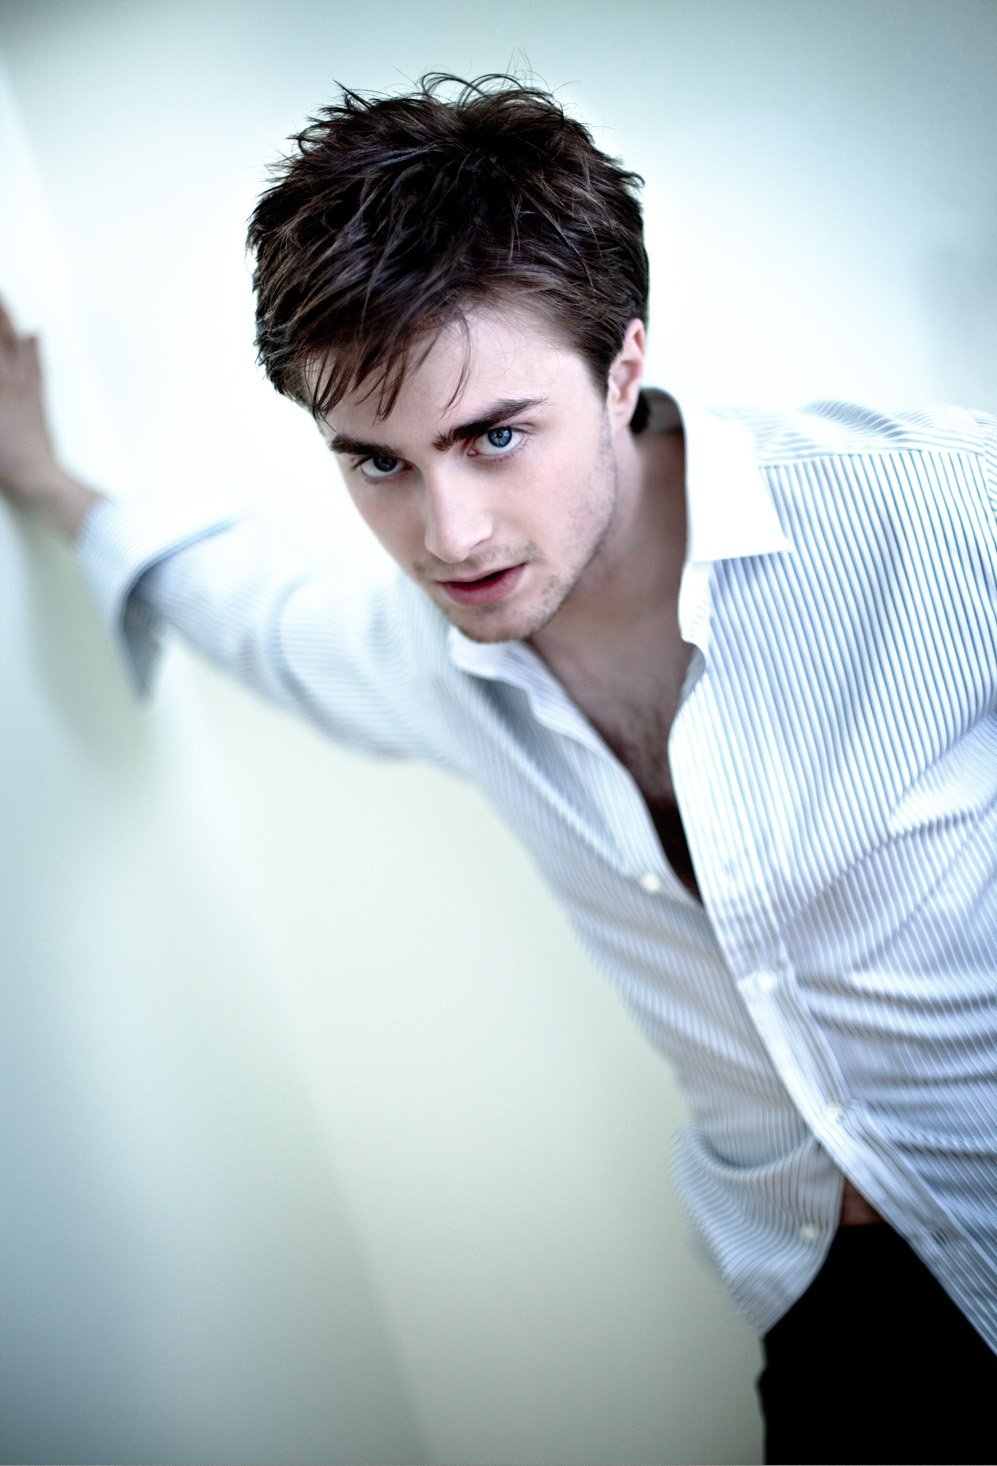 Cute Wallpapers For Whatsapp Profile Daniel Radcliffe 179957